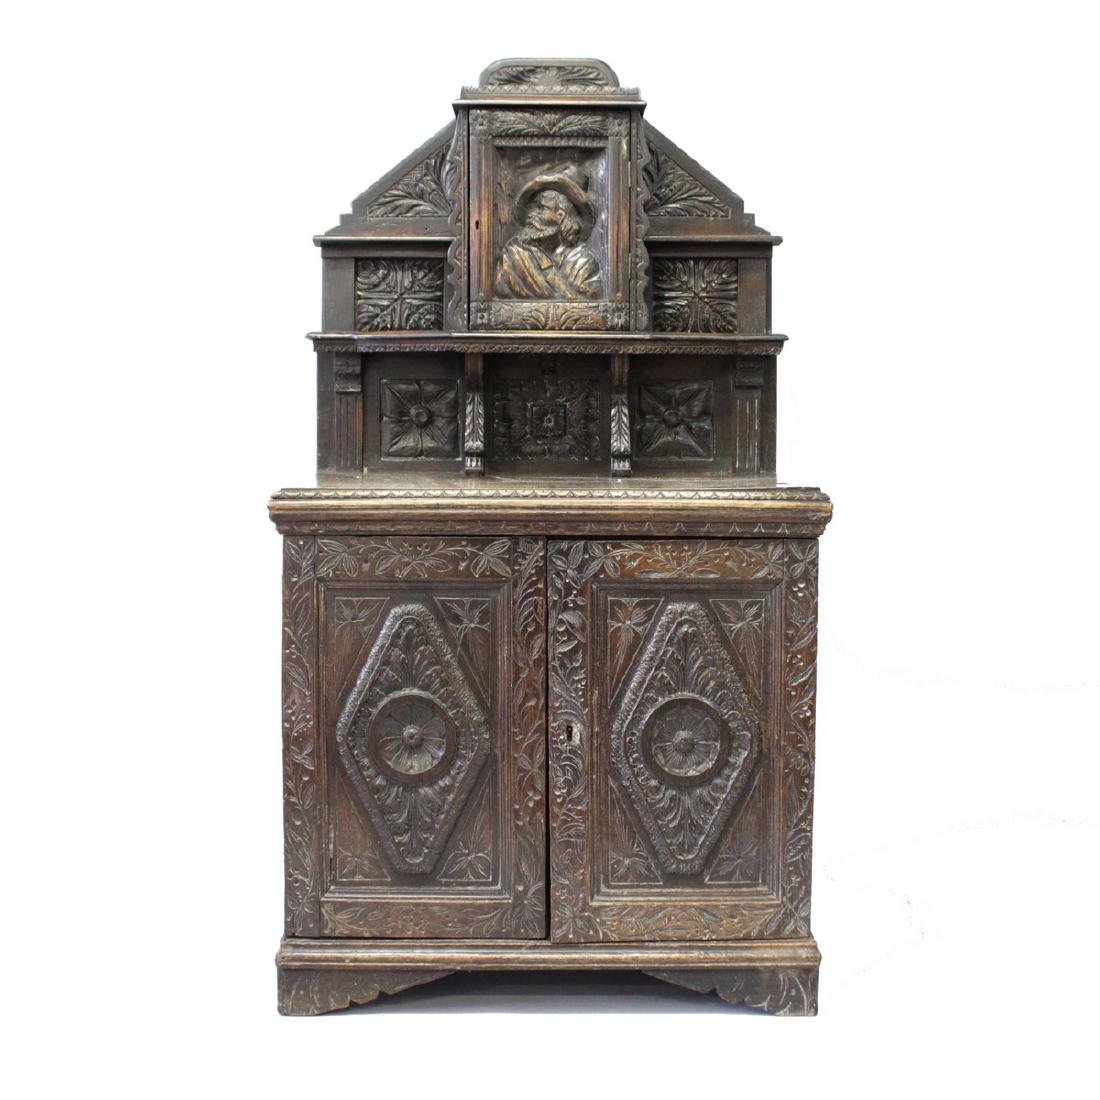 A 17TH CENTURY STYLE CARVED OAK SMALL DRESSER, 19TH